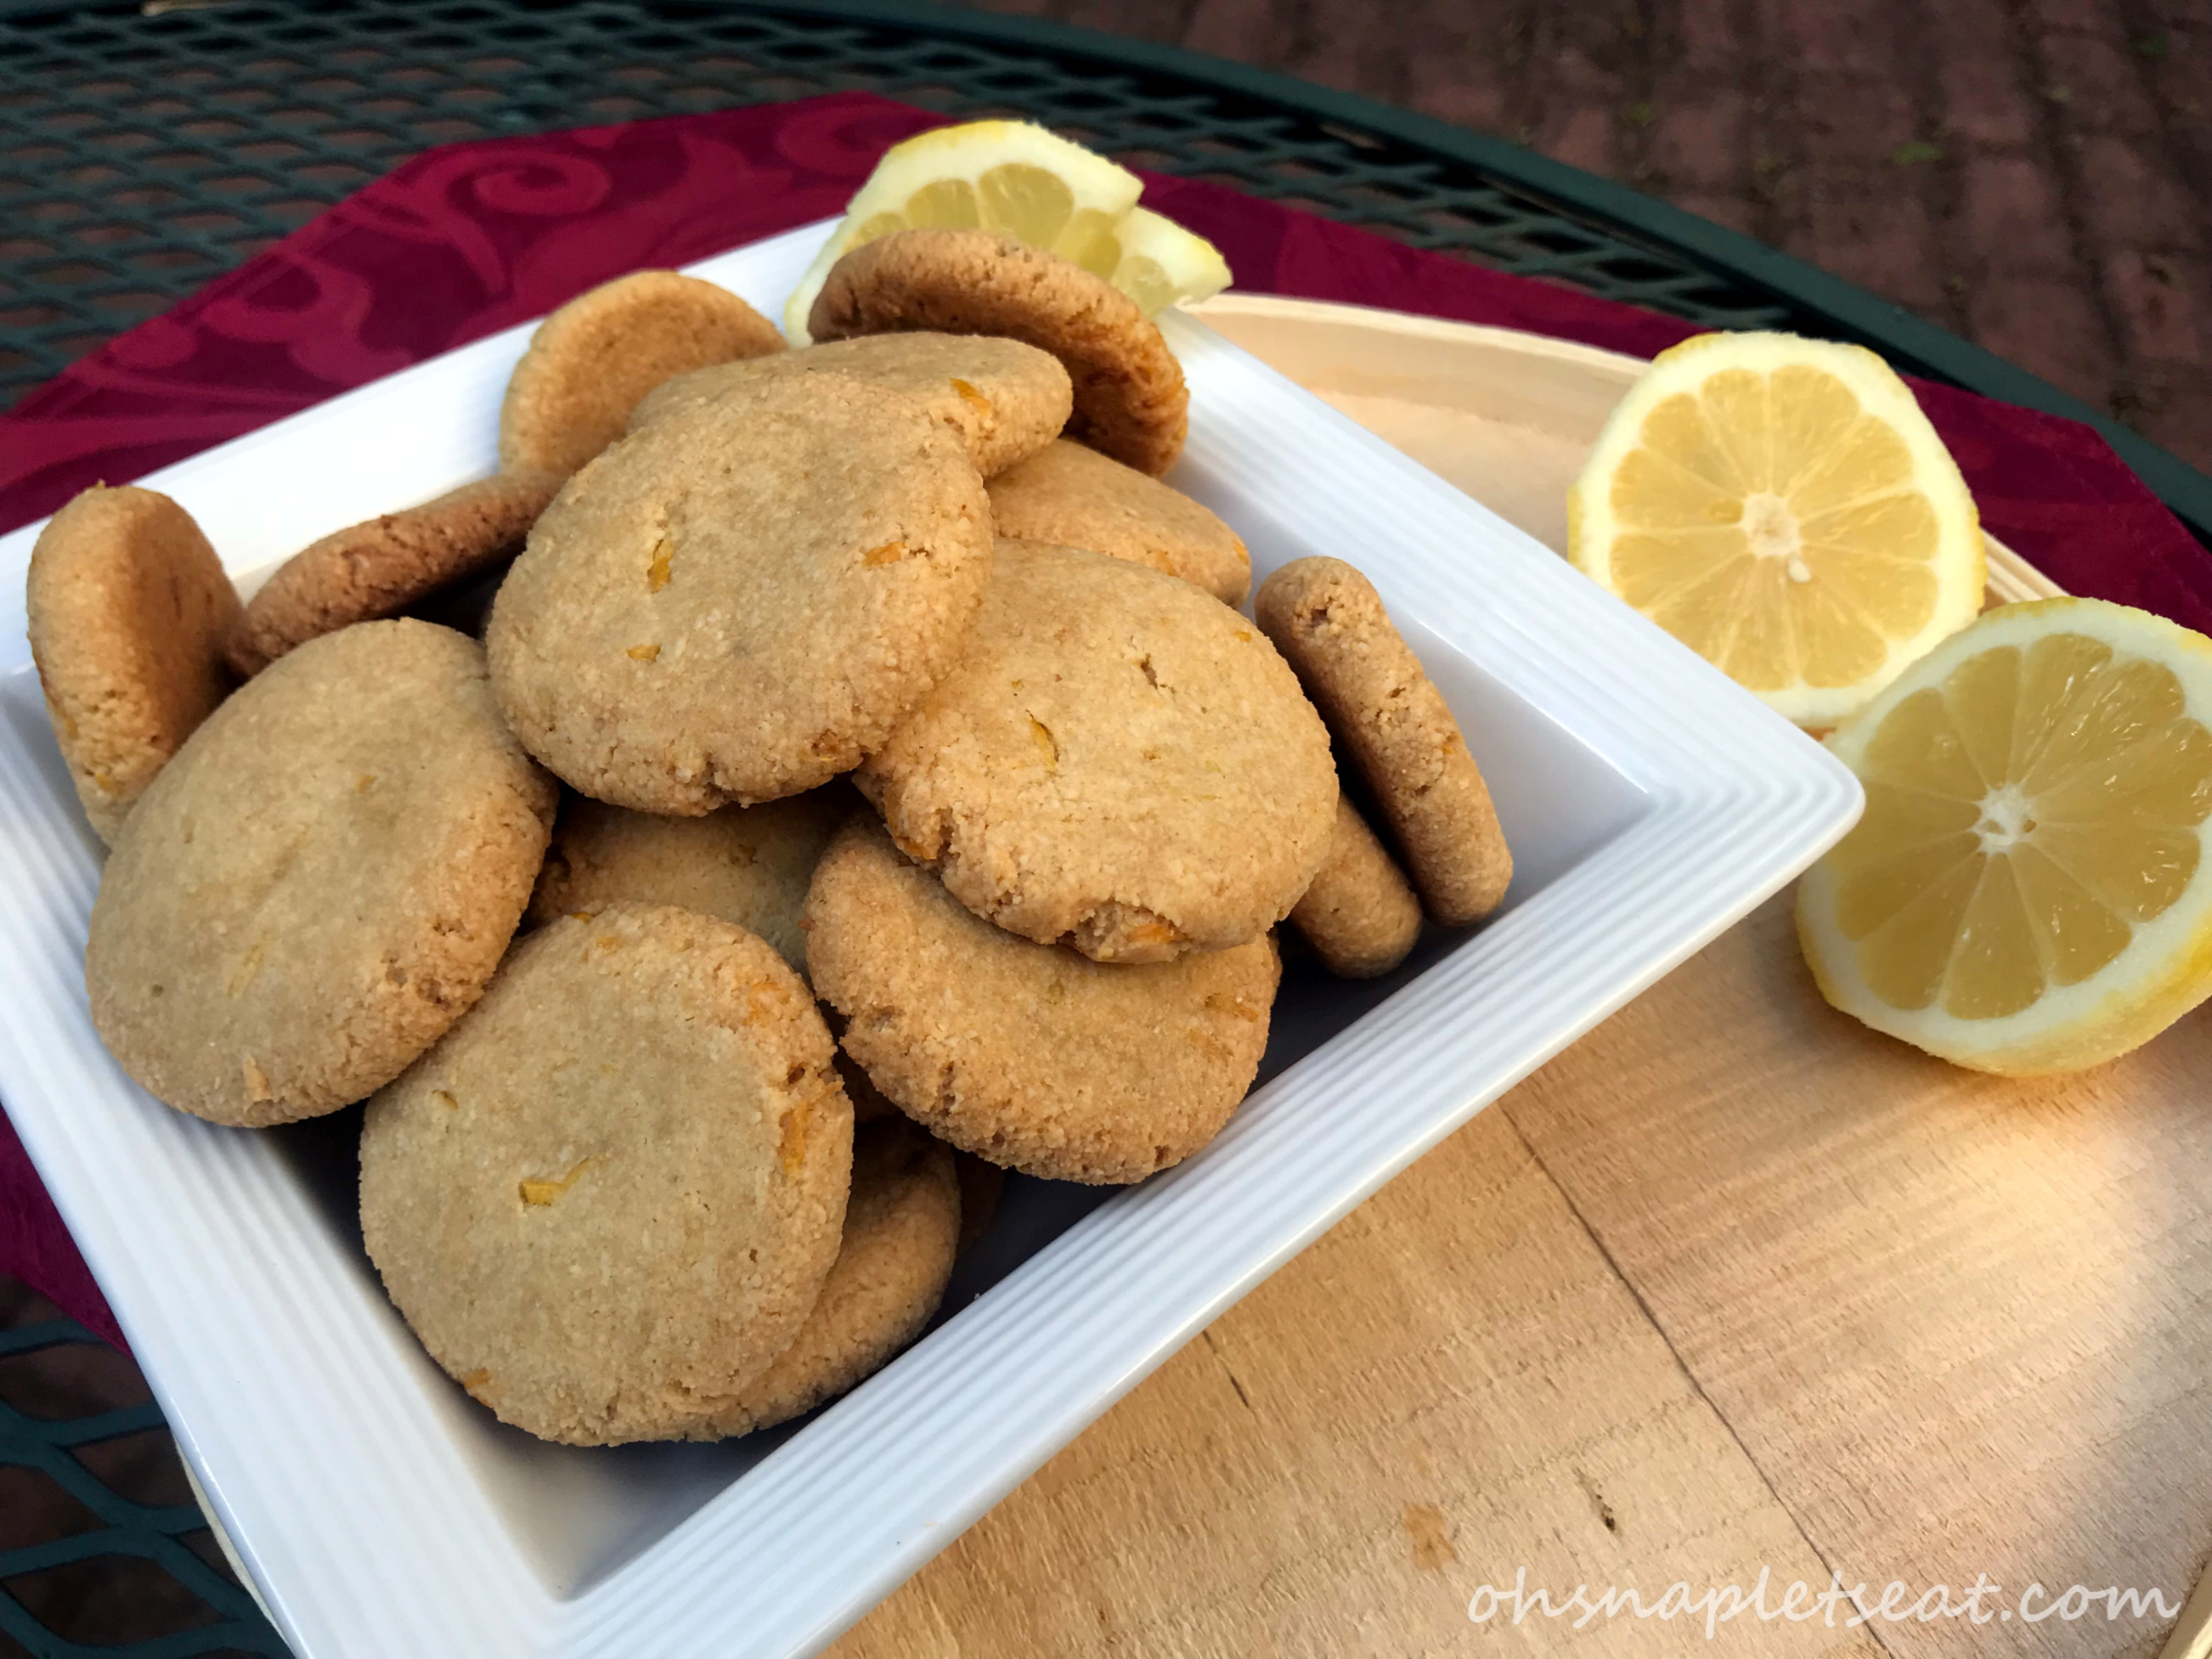 Paleo and Gluten Free Cookies